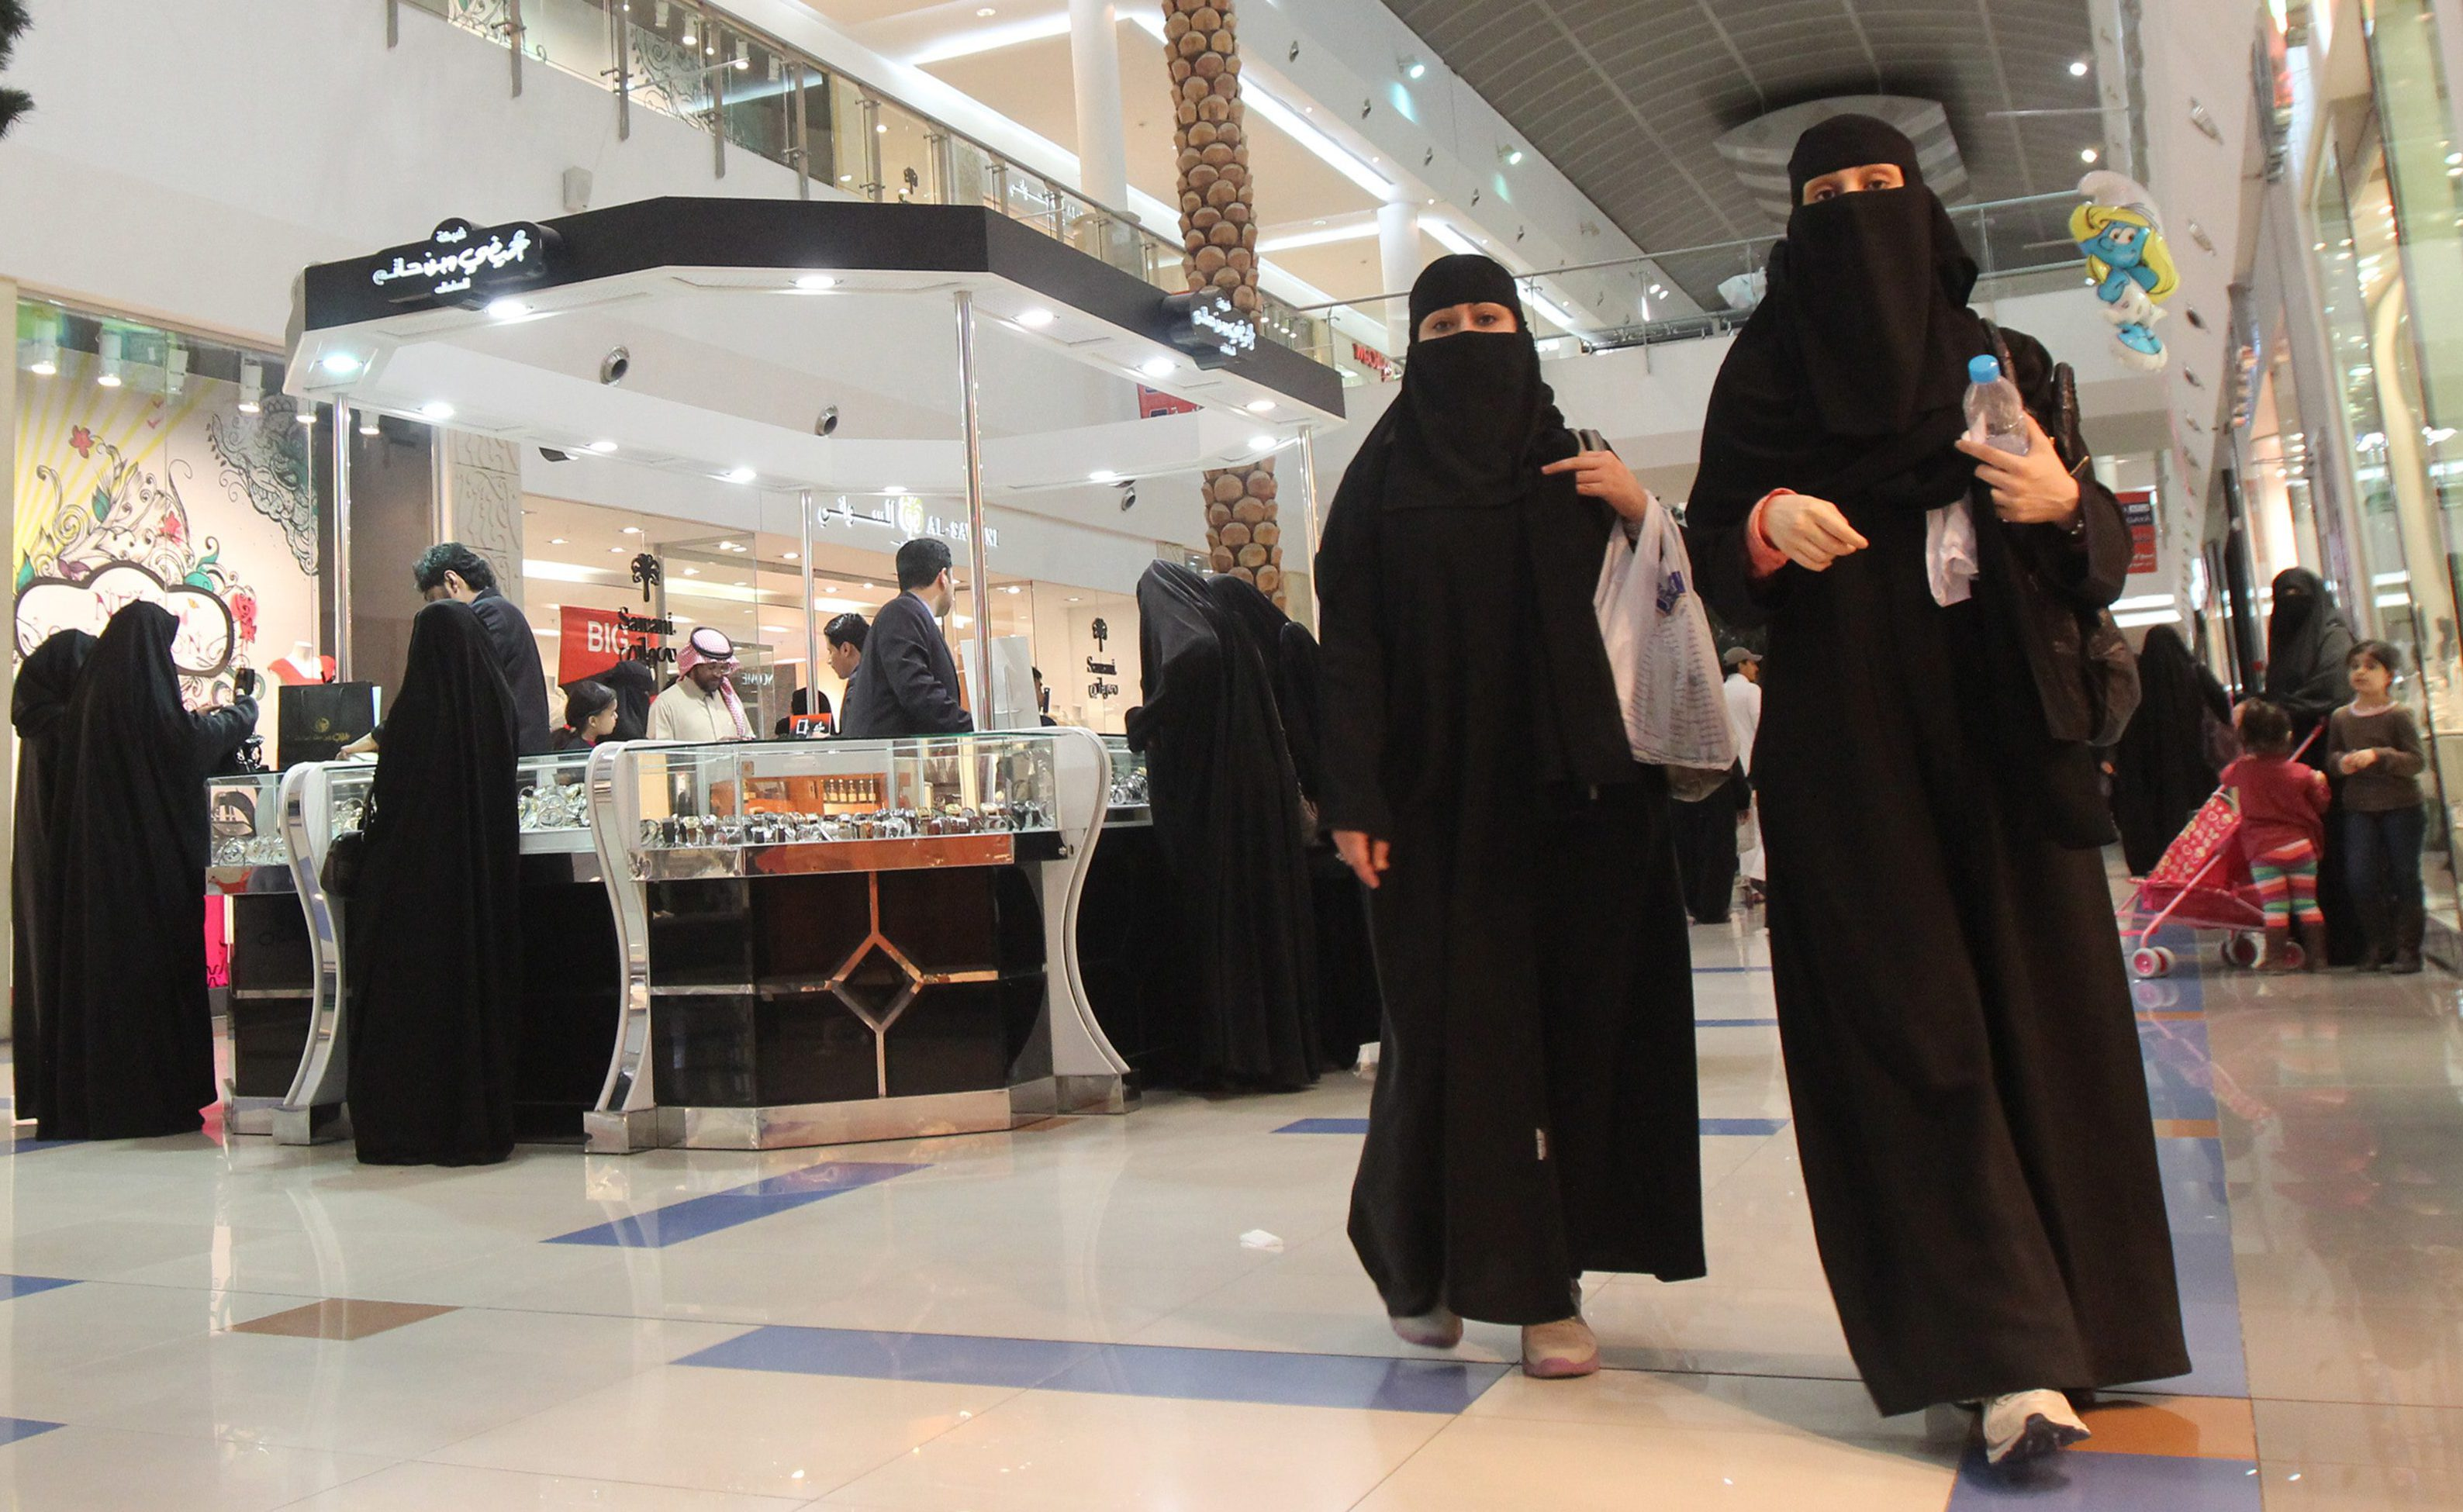 Saudi women shop at Al-Hayatt mall in Riyadh February 15, 2012. Single men are not allowed into the mall, which is accessible only to families and single women. Picture taken February 15, 2012.